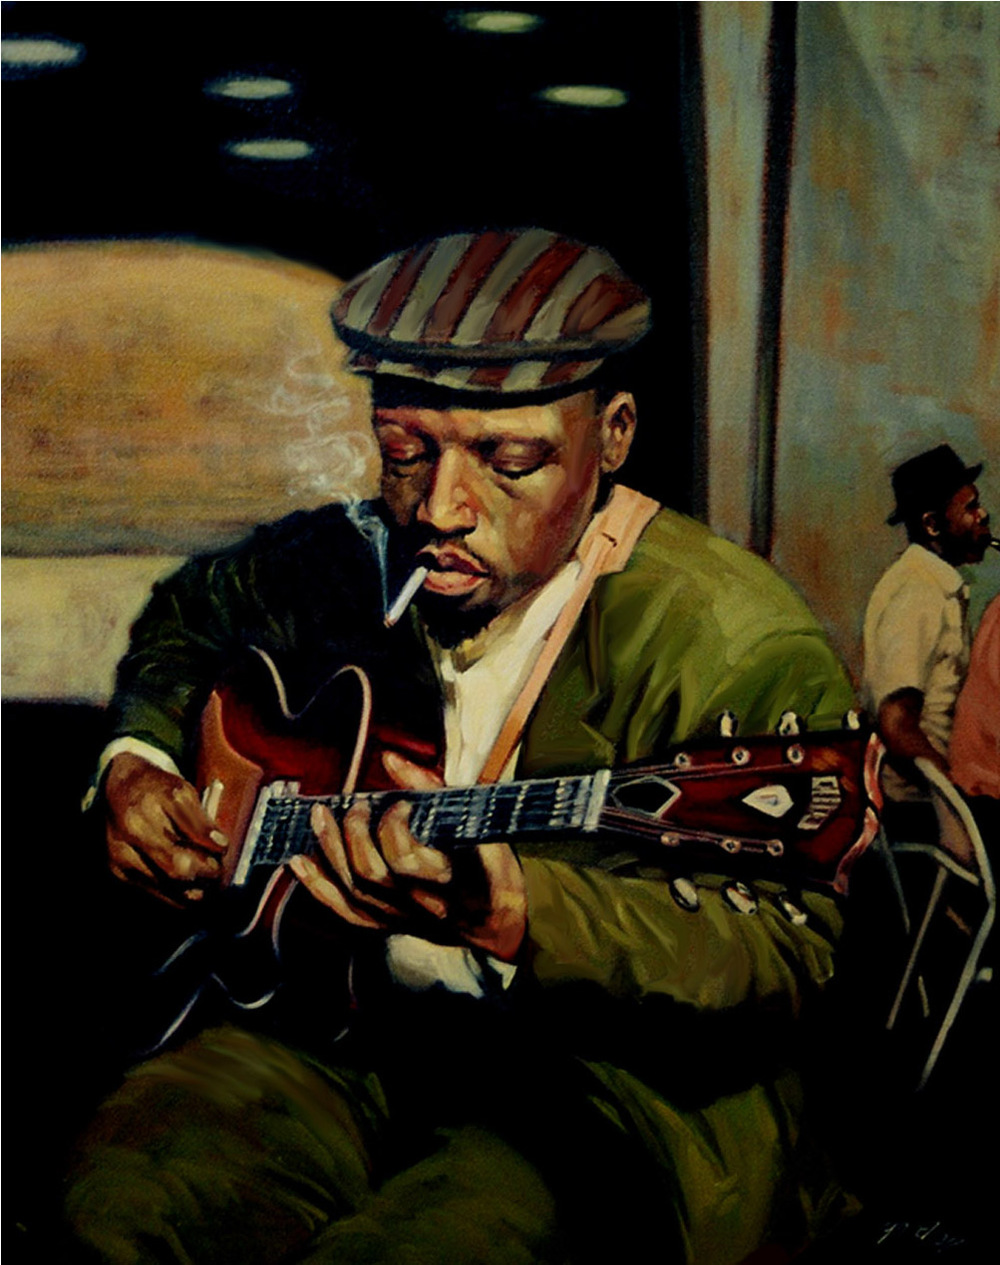 Sideman, oil on canvas, 30 x 24 in.